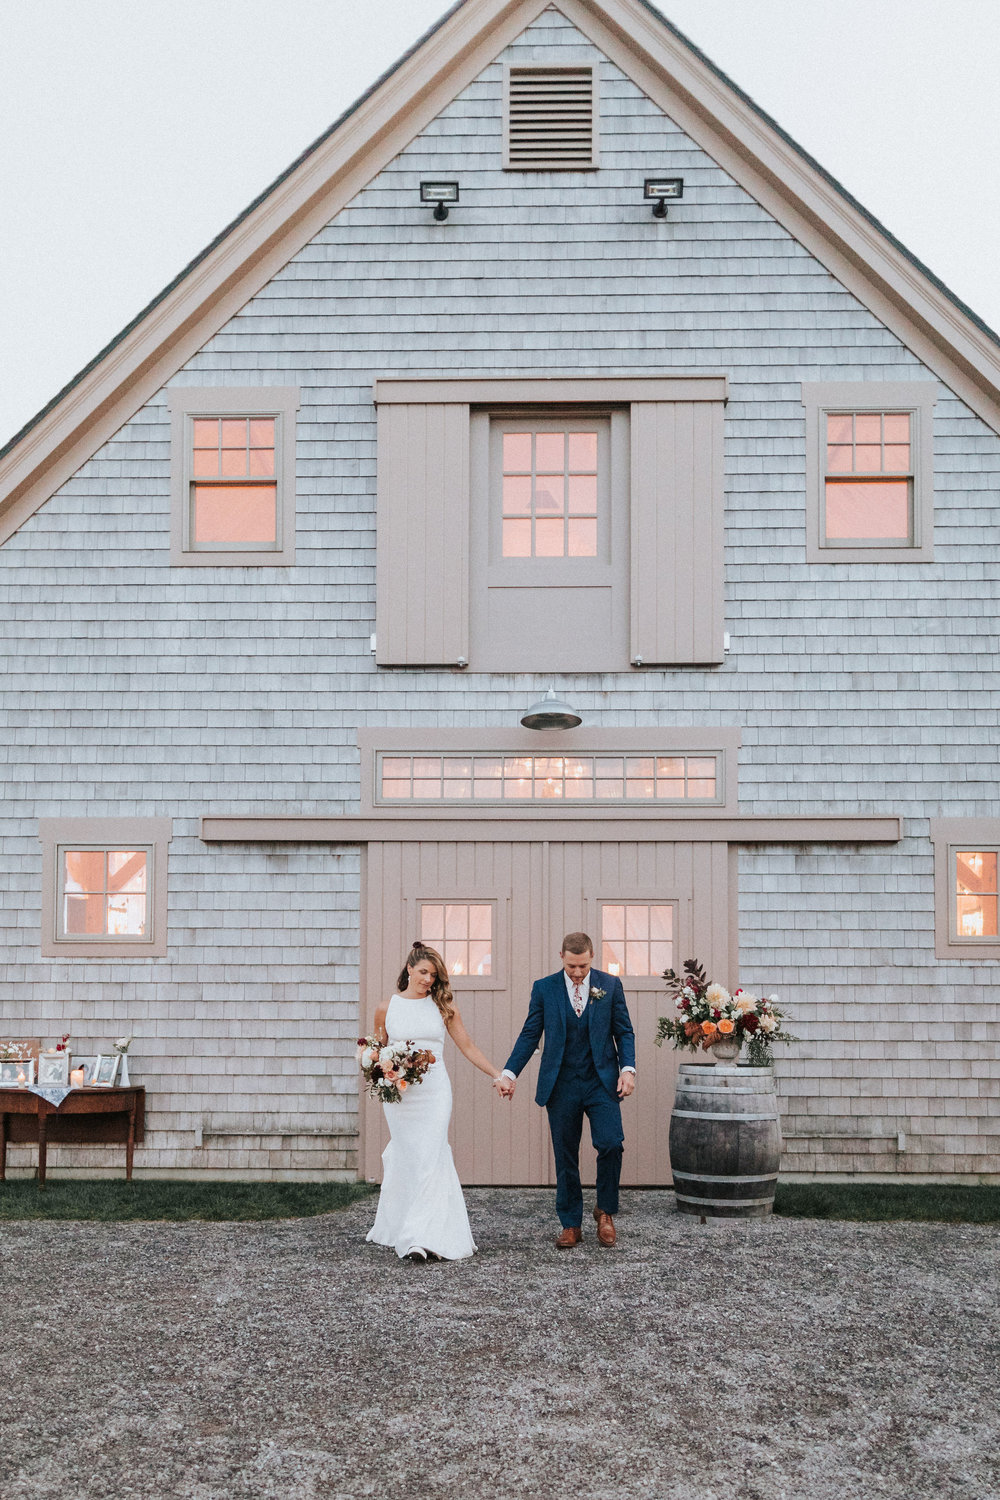 Allie_Greg_Beech_Hill_Barn_Wedding_Dinner-276.jpg